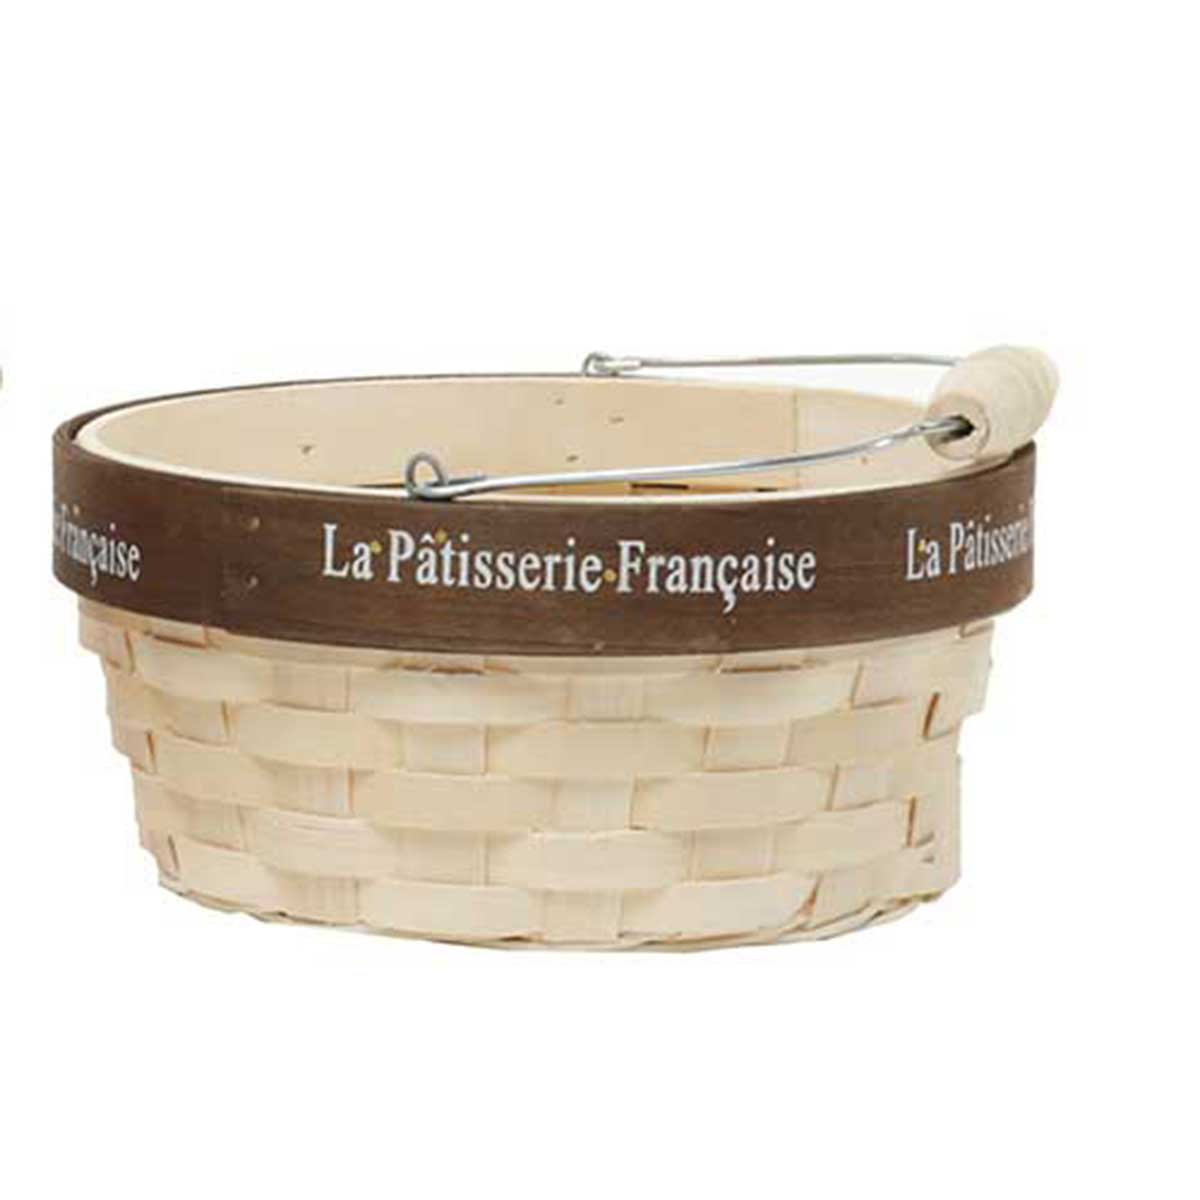 T3124 FRENCH PATISSERIE ROUND BASKET WITH HANDLE 70sp